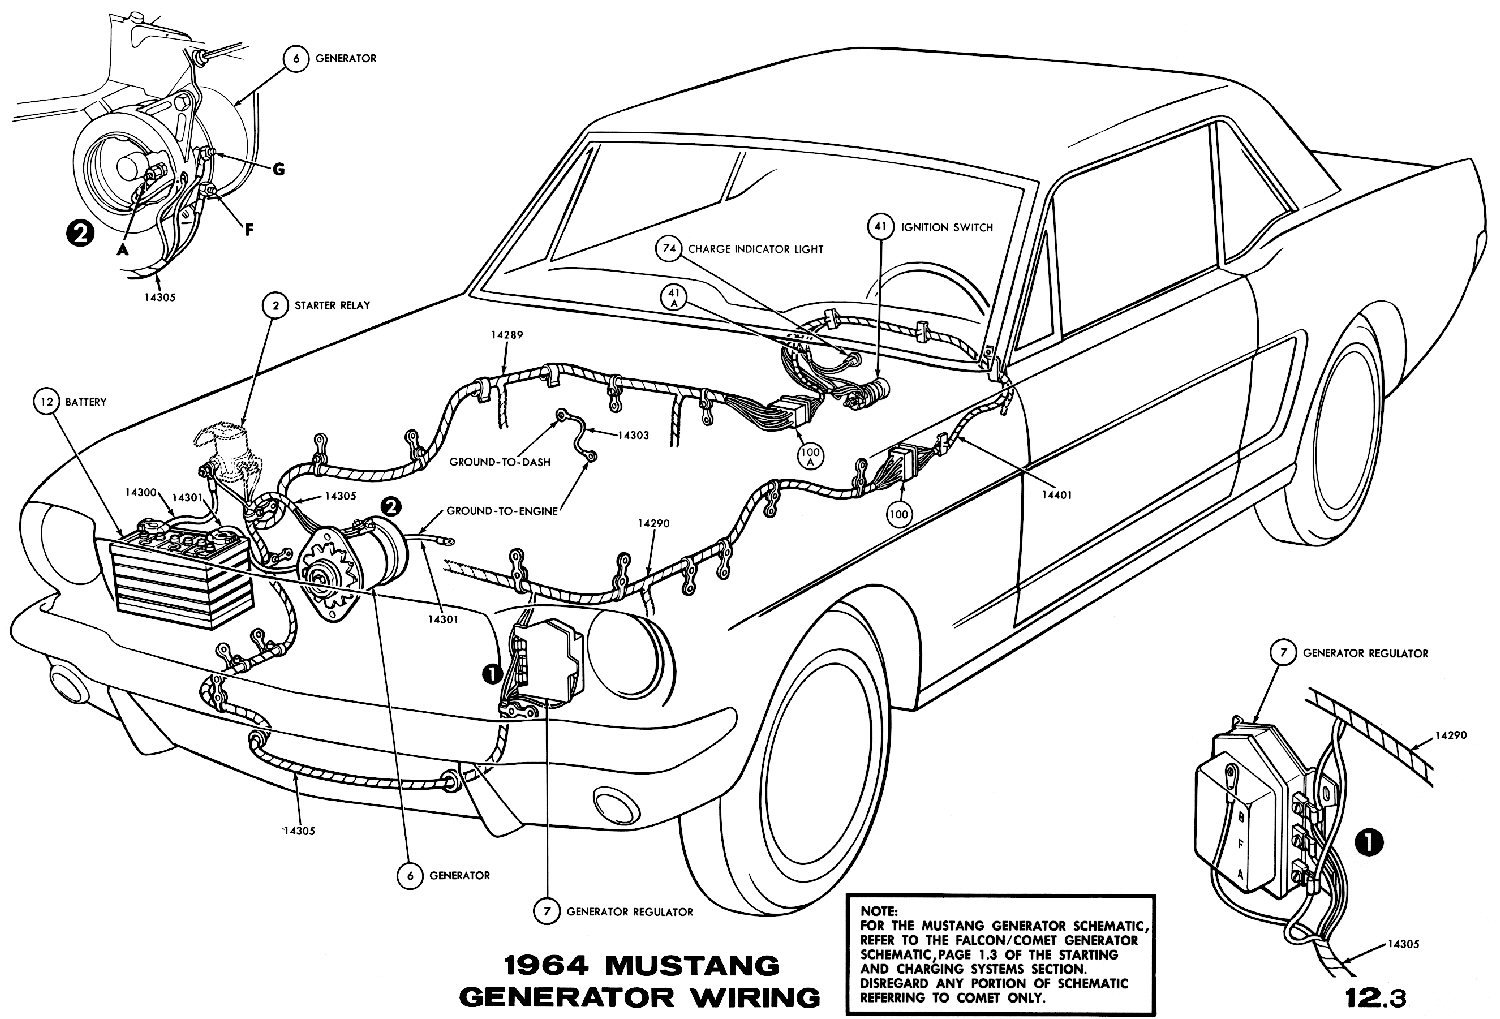 1964f 1964 mustang wiring diagrams average joe restoration 1969 mustang voltage regulator wiring diagram at mifinder.co